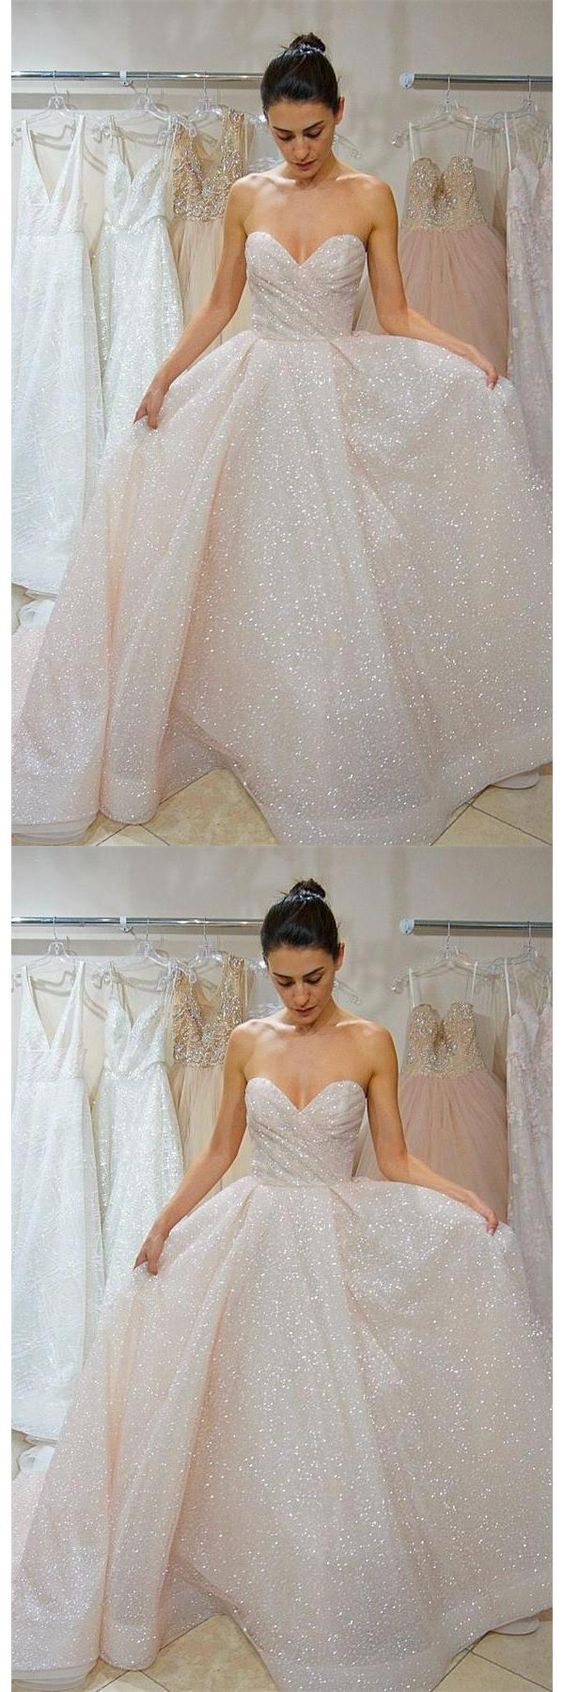 Sweetheart Elegant Lace Up Long Sparkly Wedding Dresses Prom Dresses , D0929